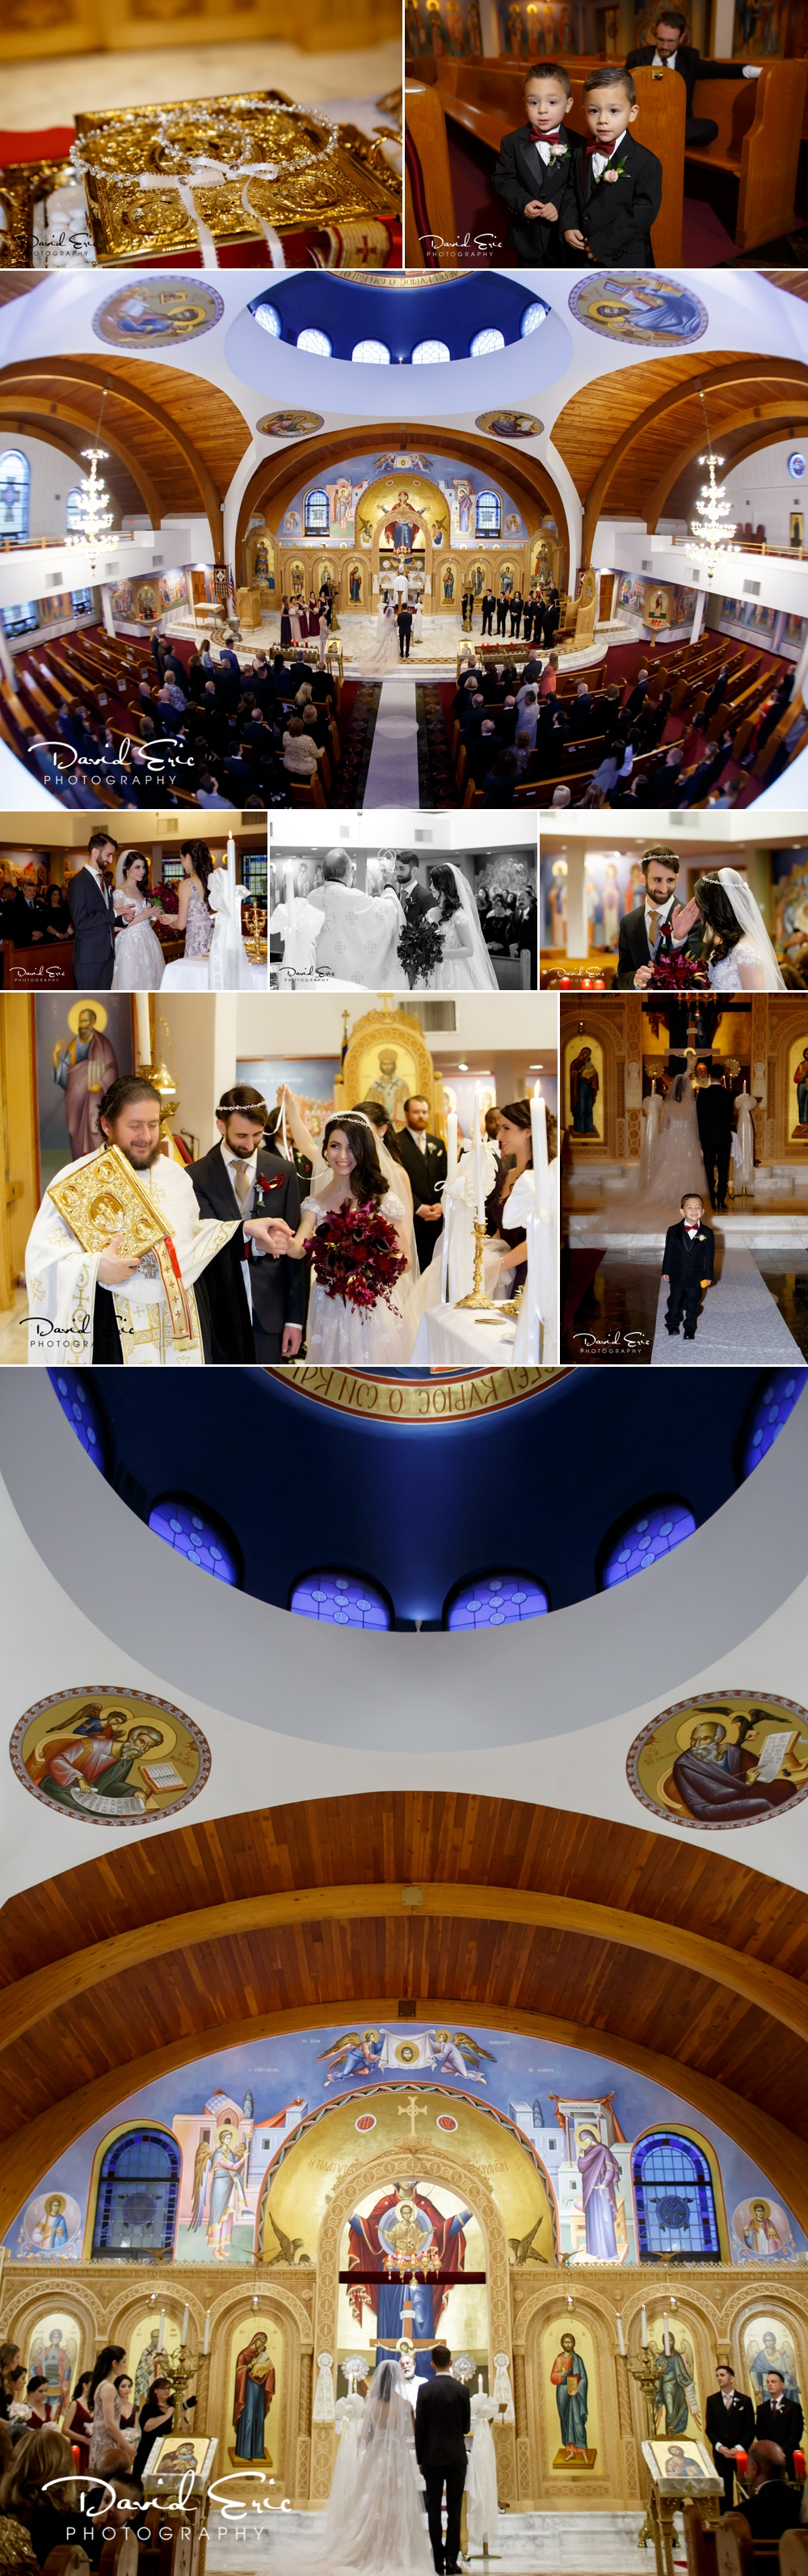 Incredible ceremony at St. Athanasios Greek Orthodox Church in Paramus, NJ.